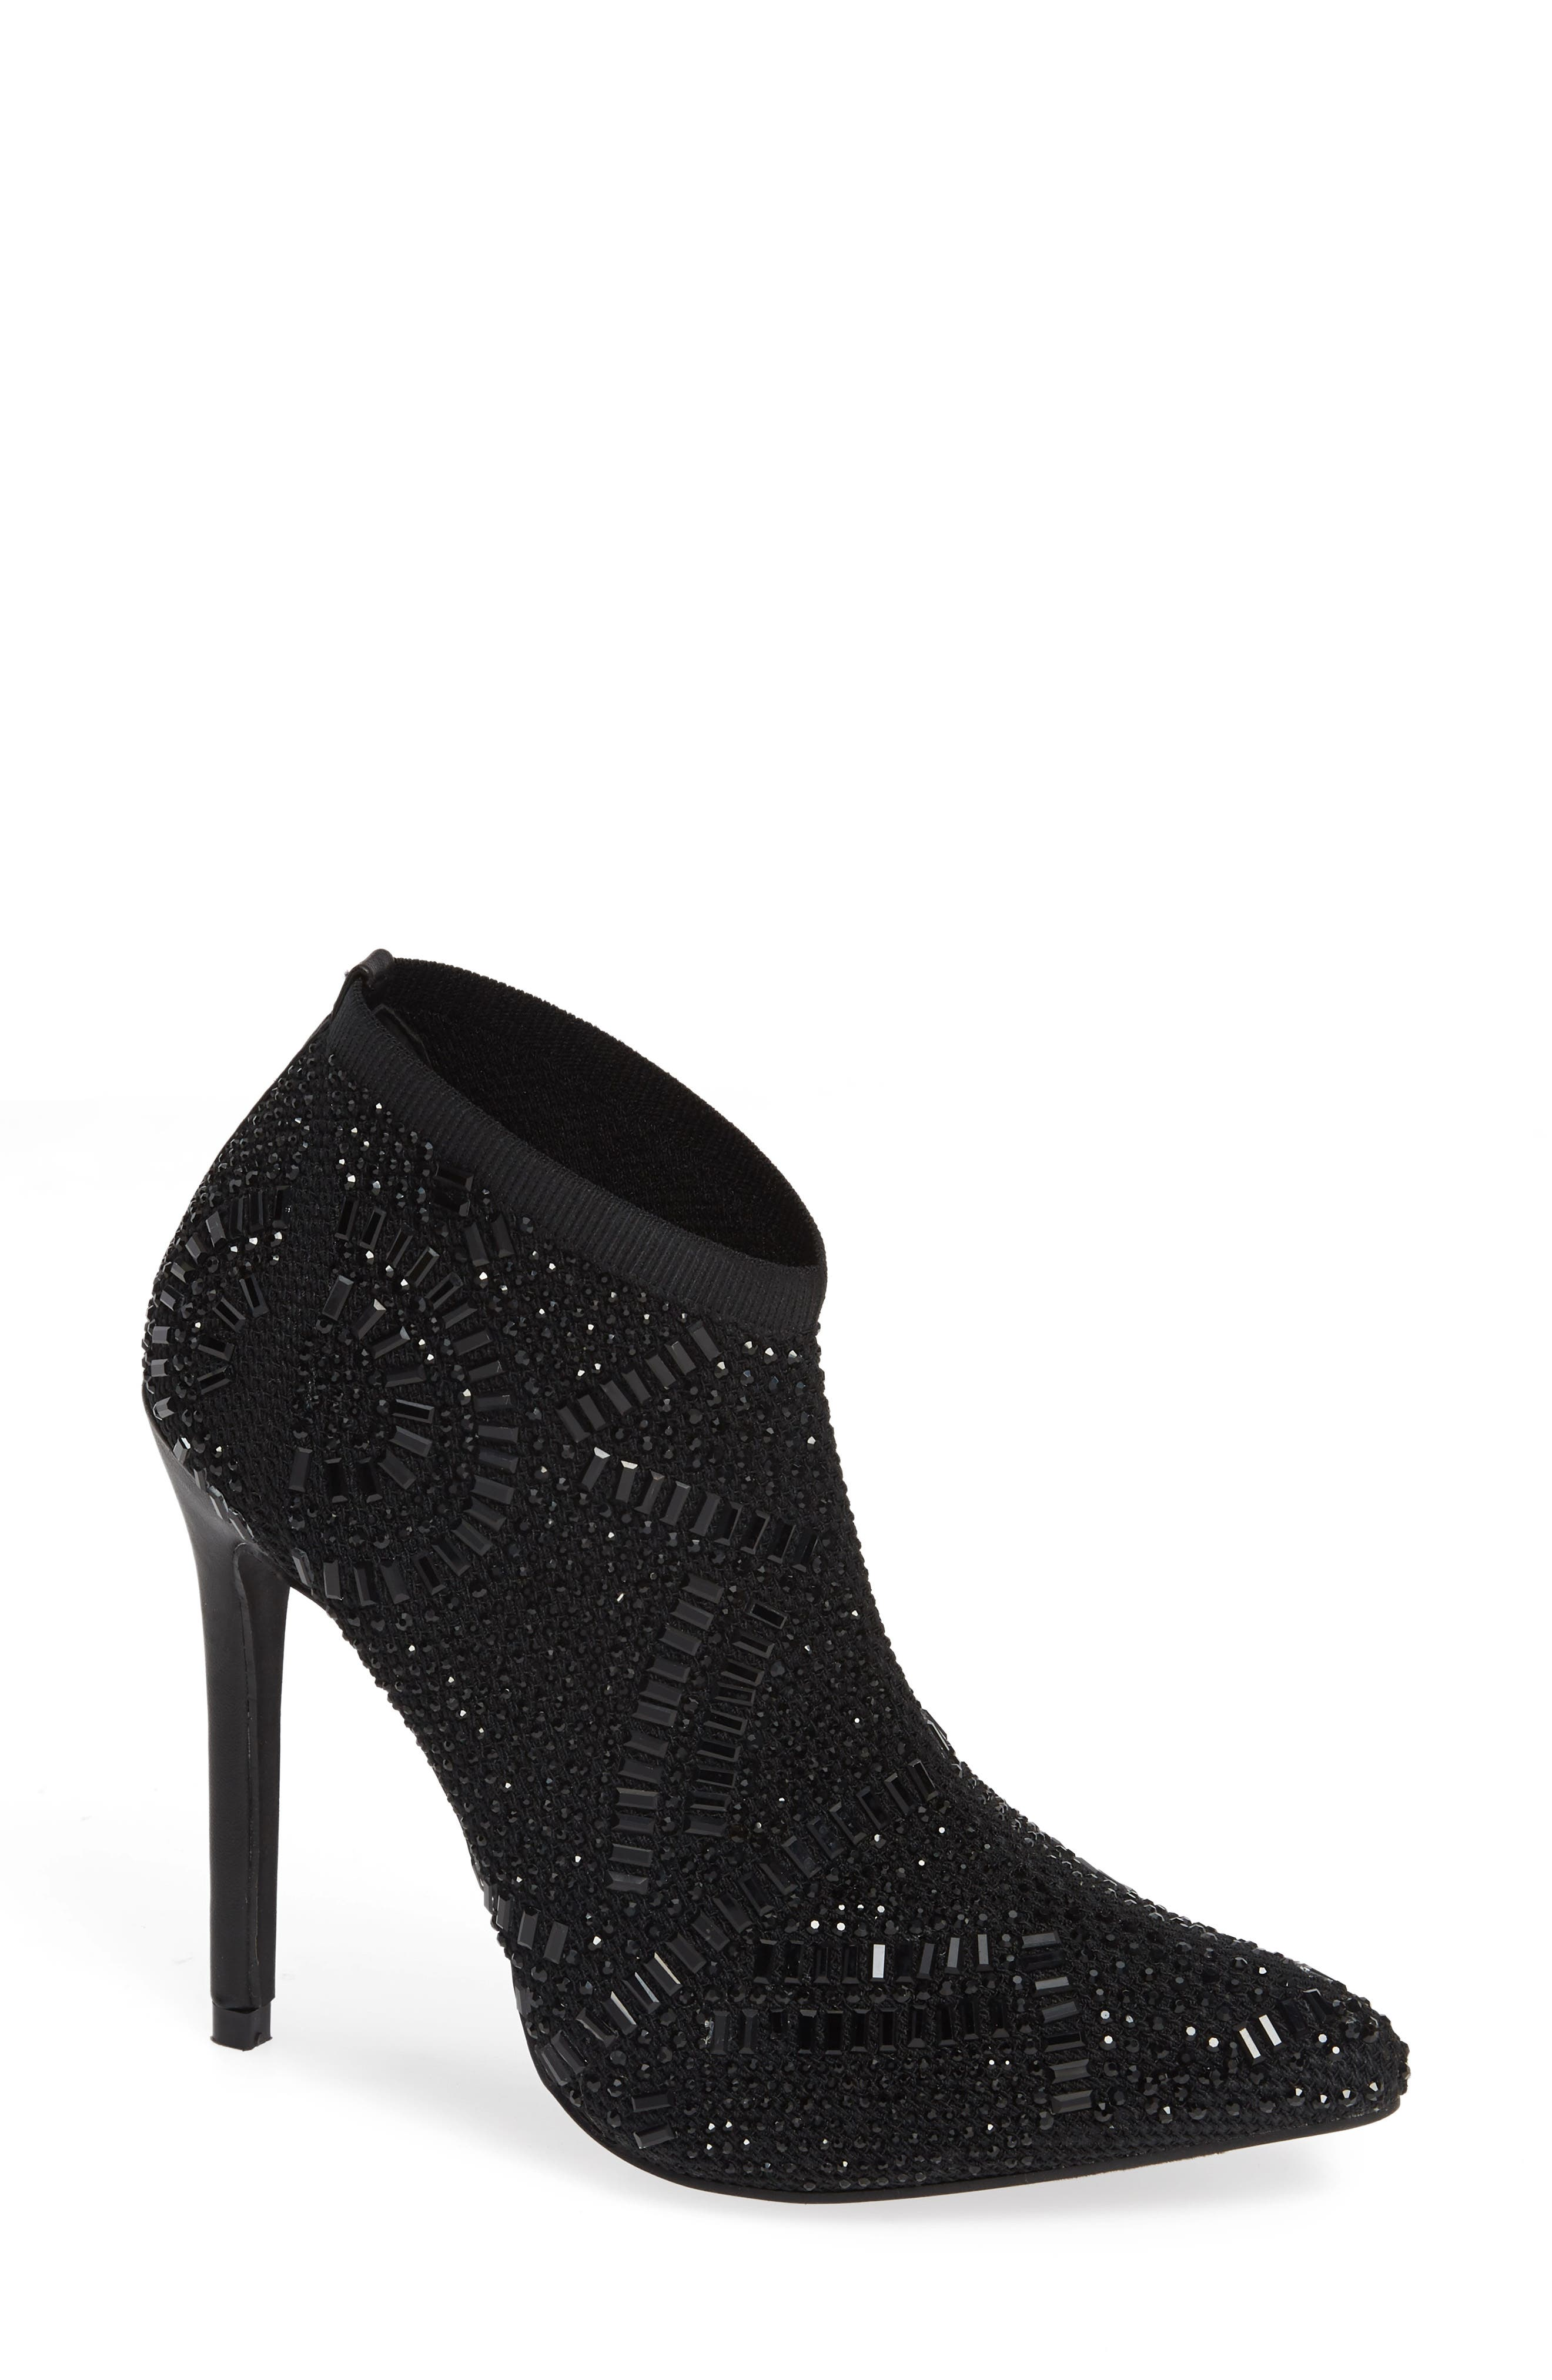 LAUREN LORRAINE Sarah Crystal Embellished Bootie, Main, color, BLACK FABRIC